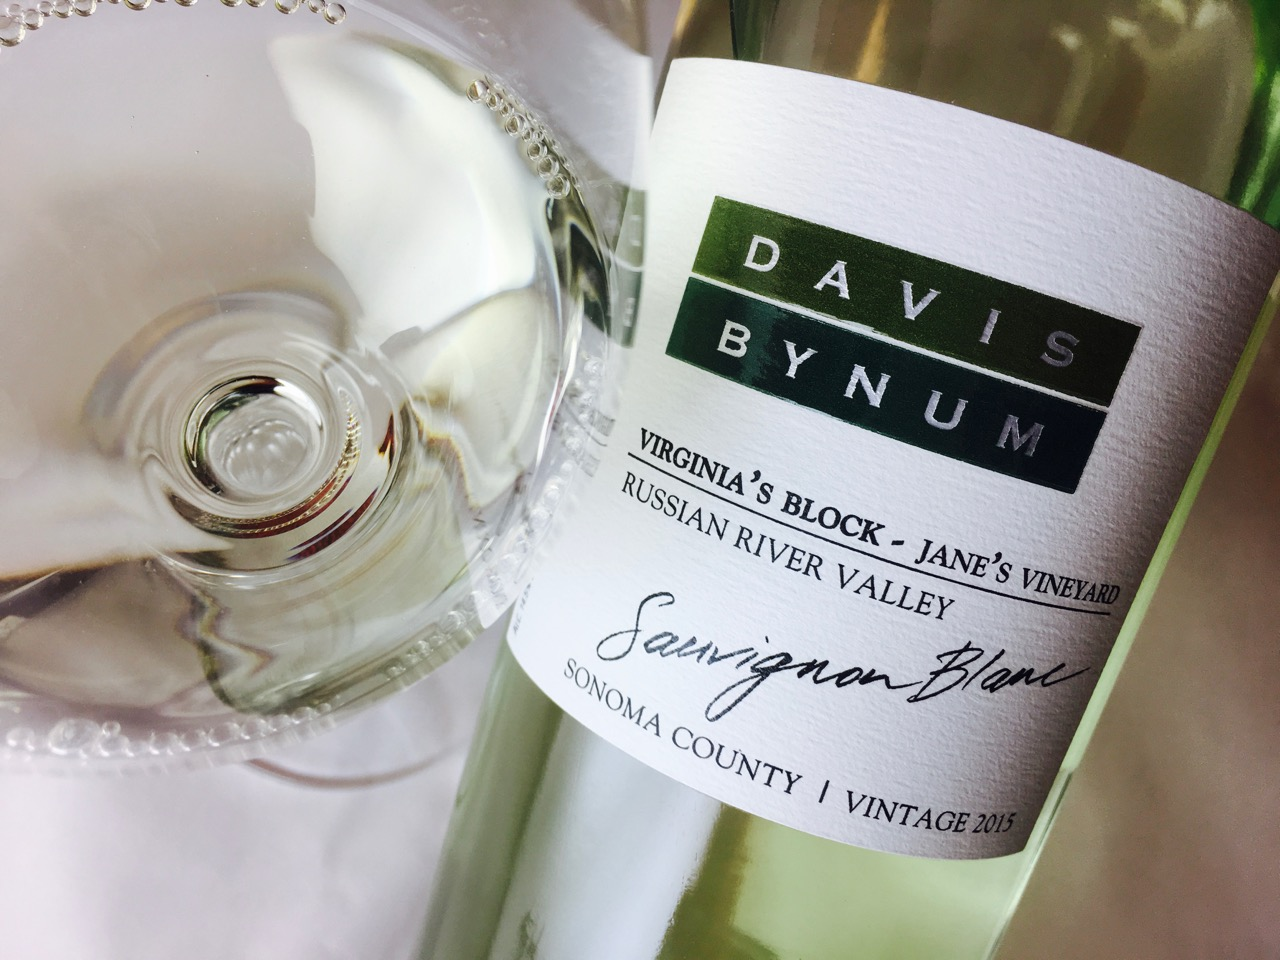 2015 Davis Bynum Sauvignon Blanc Virginia's Block Jane's Vineyard Russian River Valley, Sonoma County